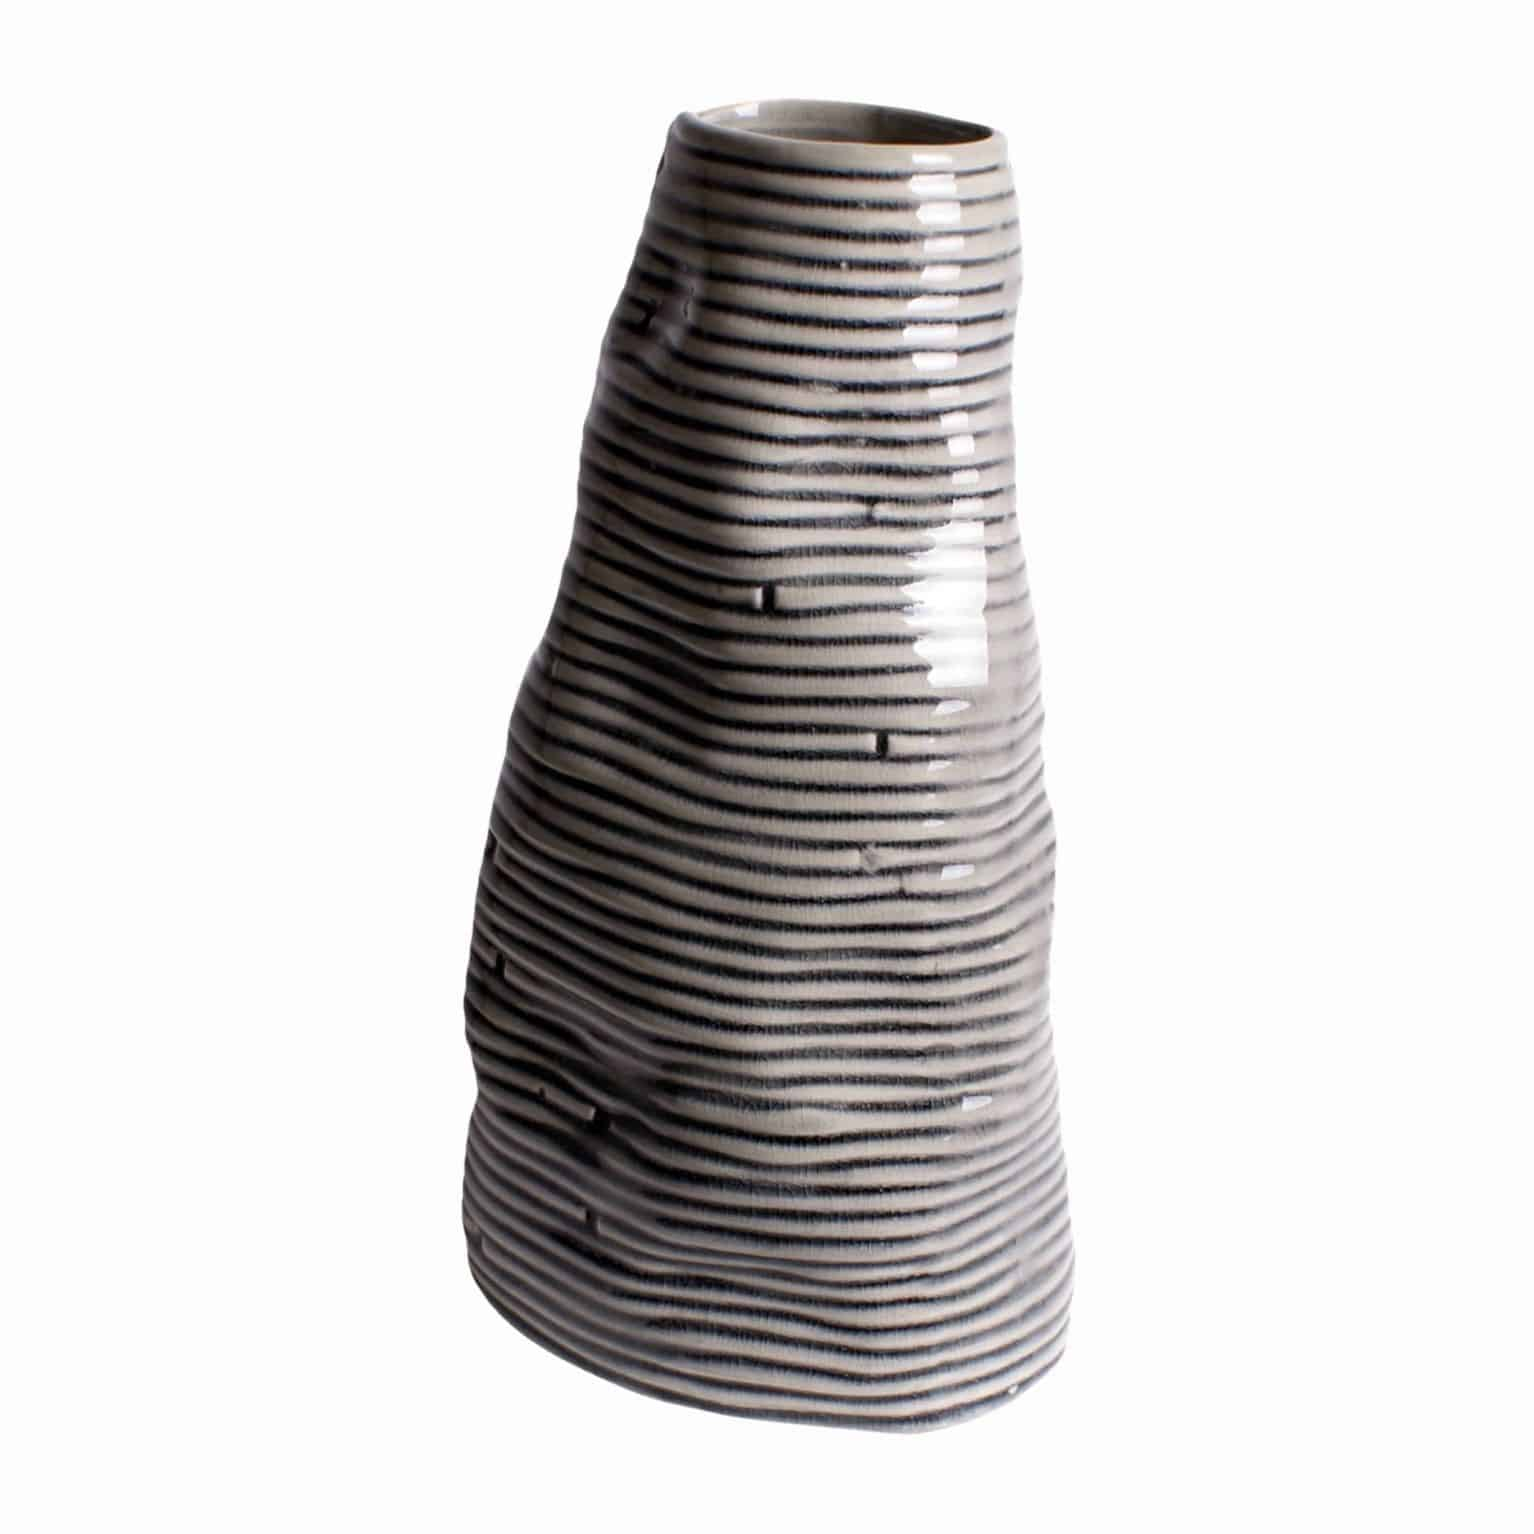 Shop for our distinctive handmade vase. A decorative tall